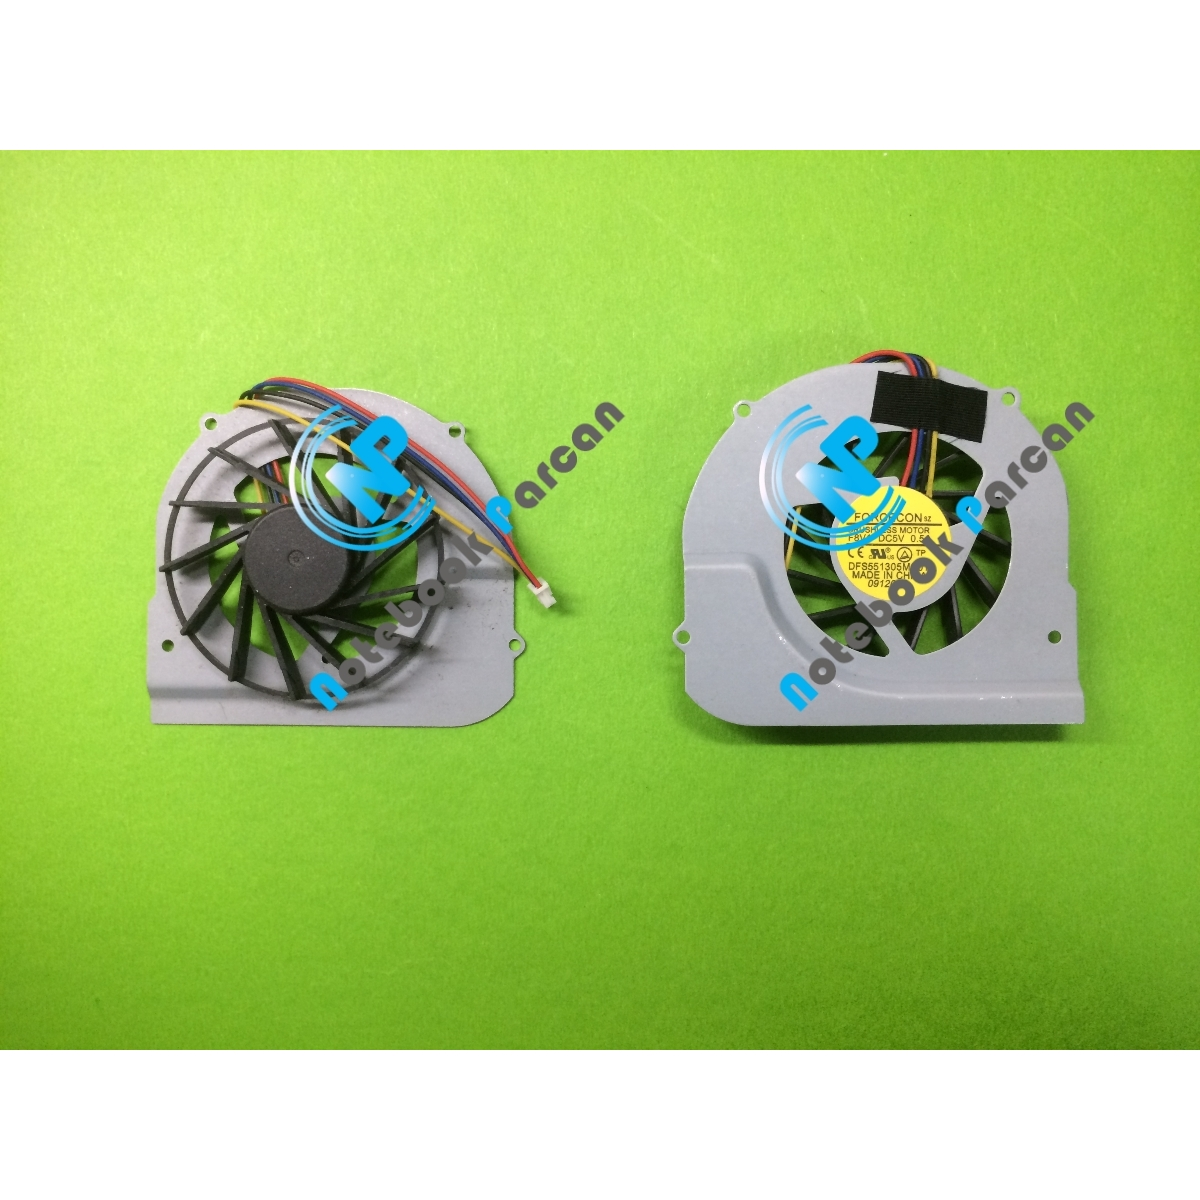 Toshiba DFS551305MC0T Fan